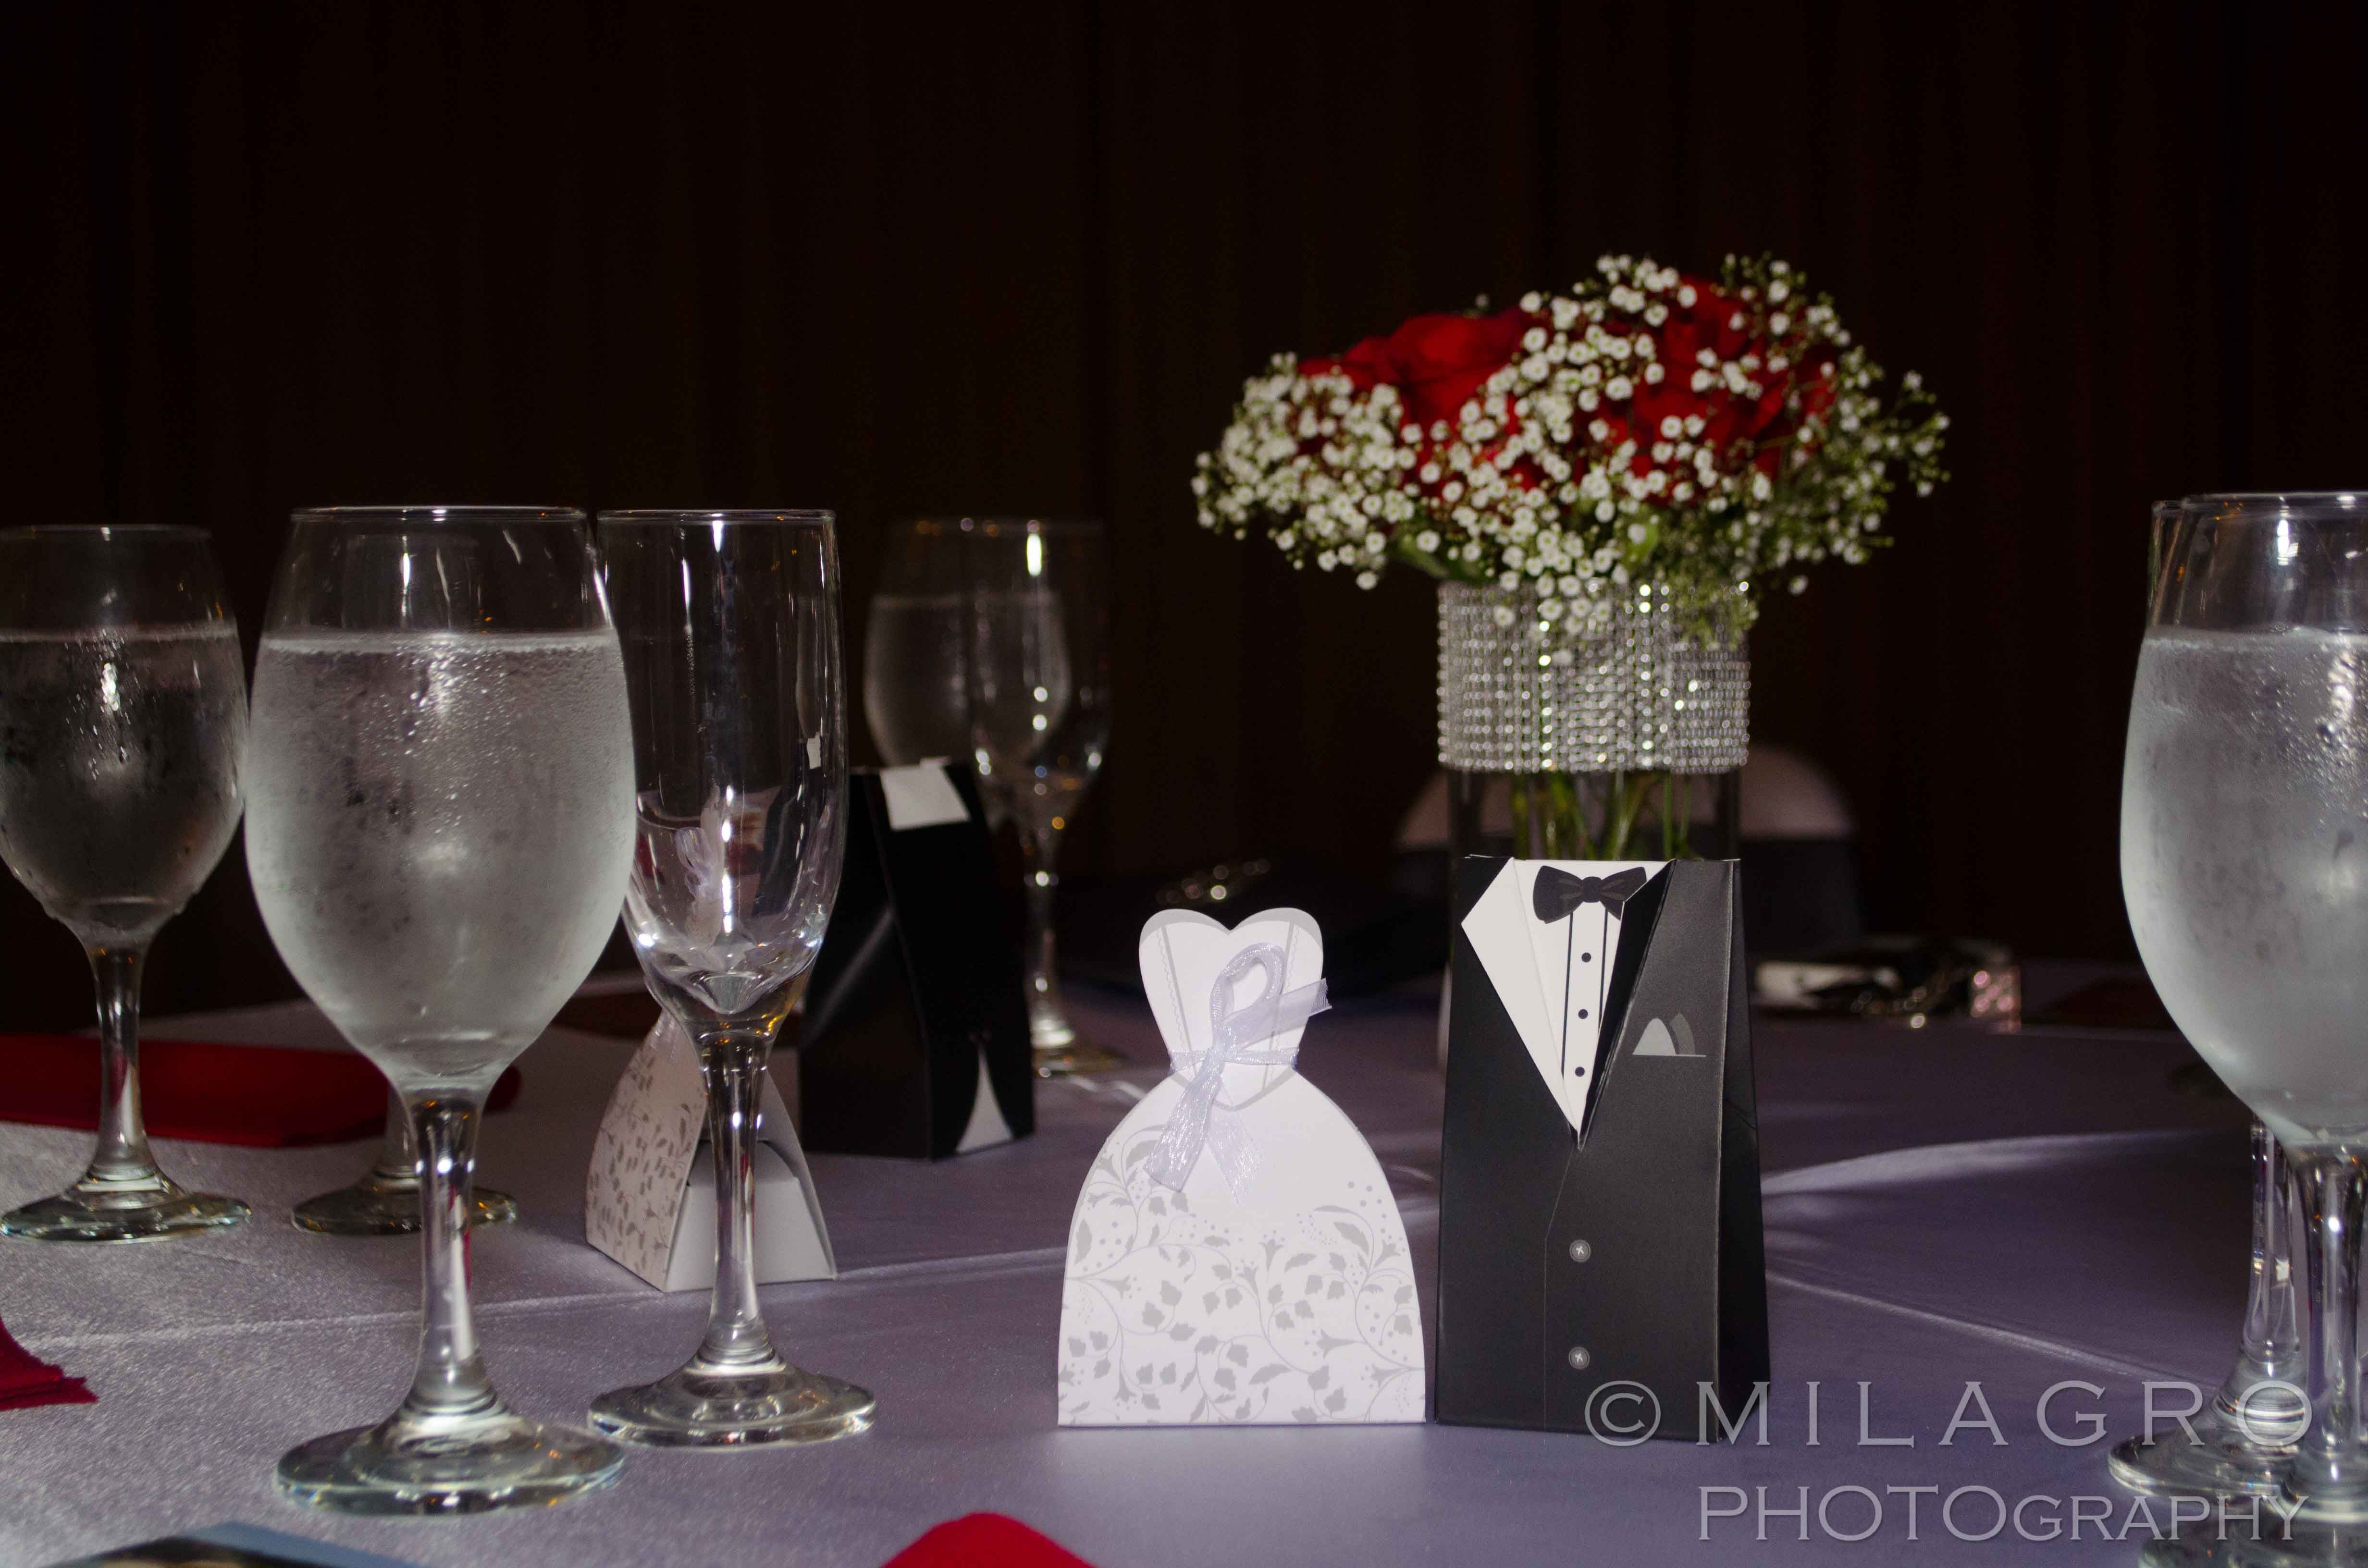 Favors for our guests. #engagement #party #table #setting #favors ...